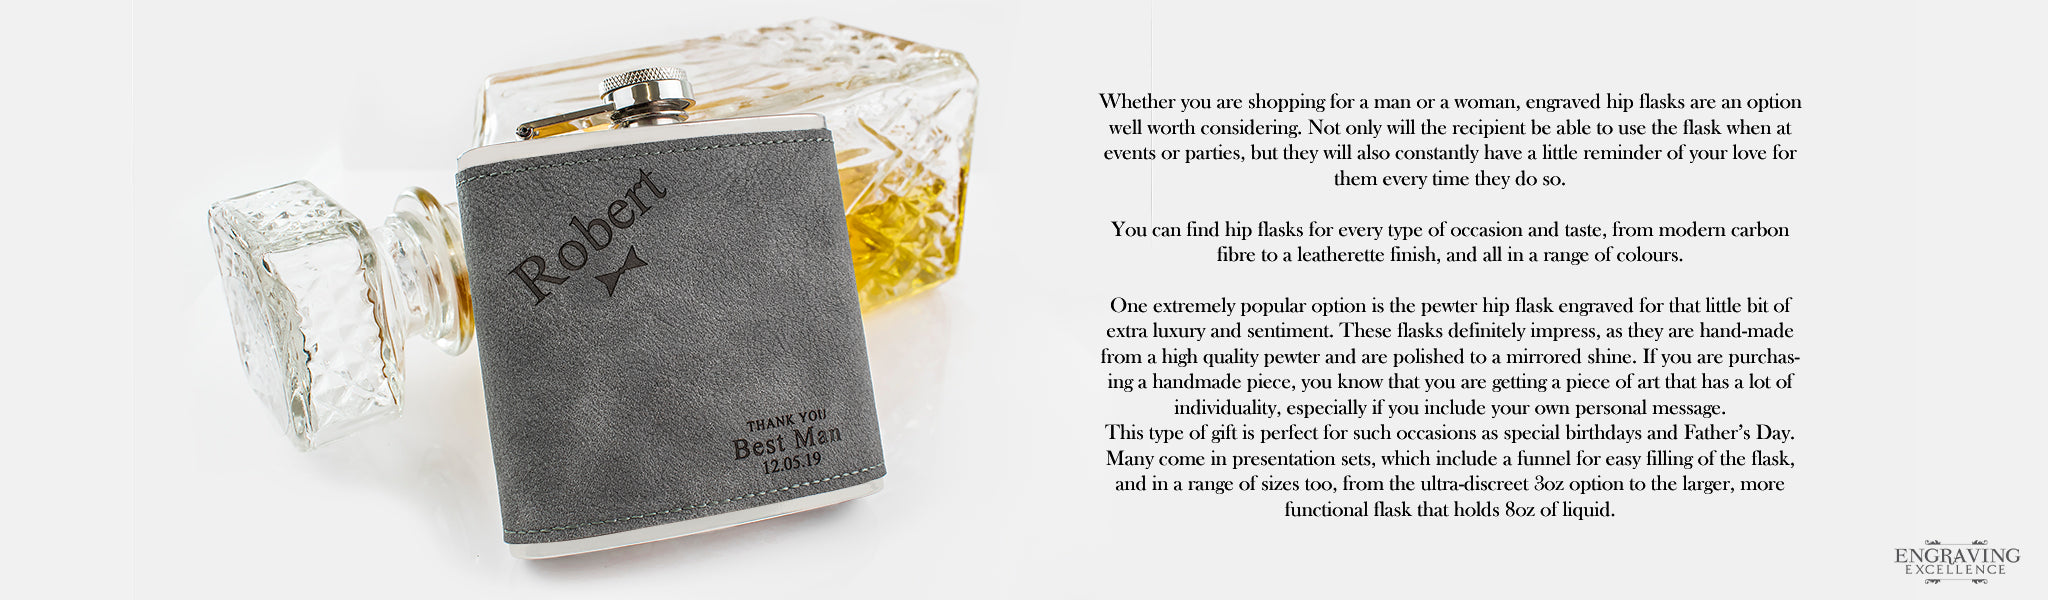 Whether you are shopping for a man or a woman, engraved hip flasks are an option well worth considering. Not only will the recipient be able to use the flask when at events or parties, but they will also constantly have a little reminder of your love for them every time they do so.   You can find hip flasks for every type of occasion and taste, from modern carbon fibre to a leatherette finish, and all in a range of colours.   One extremely popular option is the pewter hip flask engraved for that little bit of extra luxury and sentiment. These flasks definitely impress, as they are hand-made from a high quality pewter and are polished to a mirrored shine. If you are purchasing a handmade piece, you know that you are getting a piece of art that has a lot of individuality, especially if you include your own personal message.  This type of gift is perfect for such occasions as special birthdays and Father's Day. Many come in presentation sets, which include a funnel for easy filling of the flask, and in a range of sizes too, from the ultra-discreet 3oz option to the larger, more functional flask that holds 8oz of liquid.